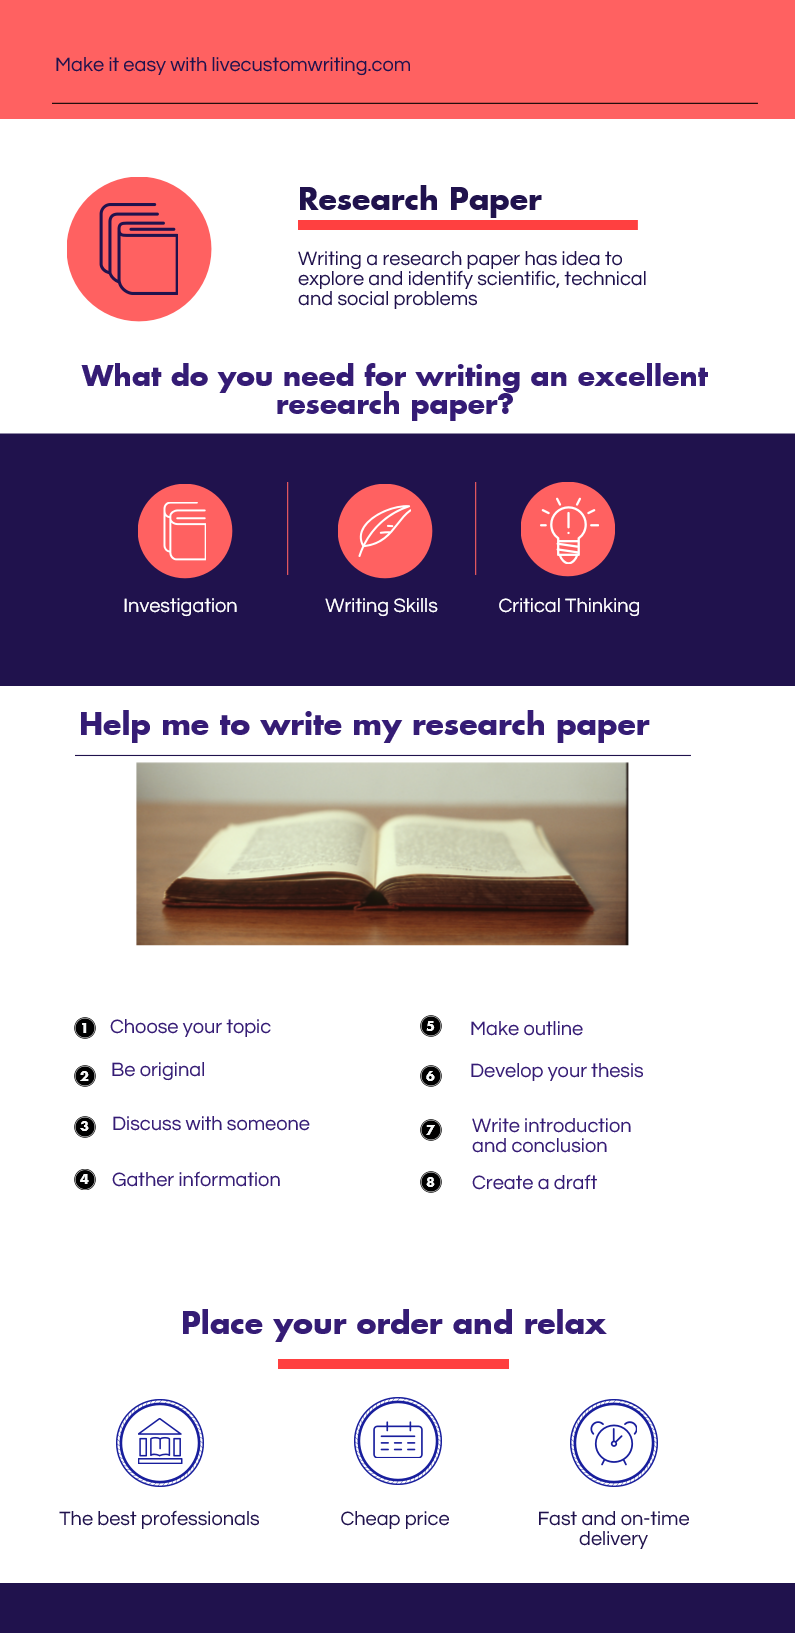 016 Untitled Infographic28229 Write My Research Formidable Paper For Me Cheap Someone Full